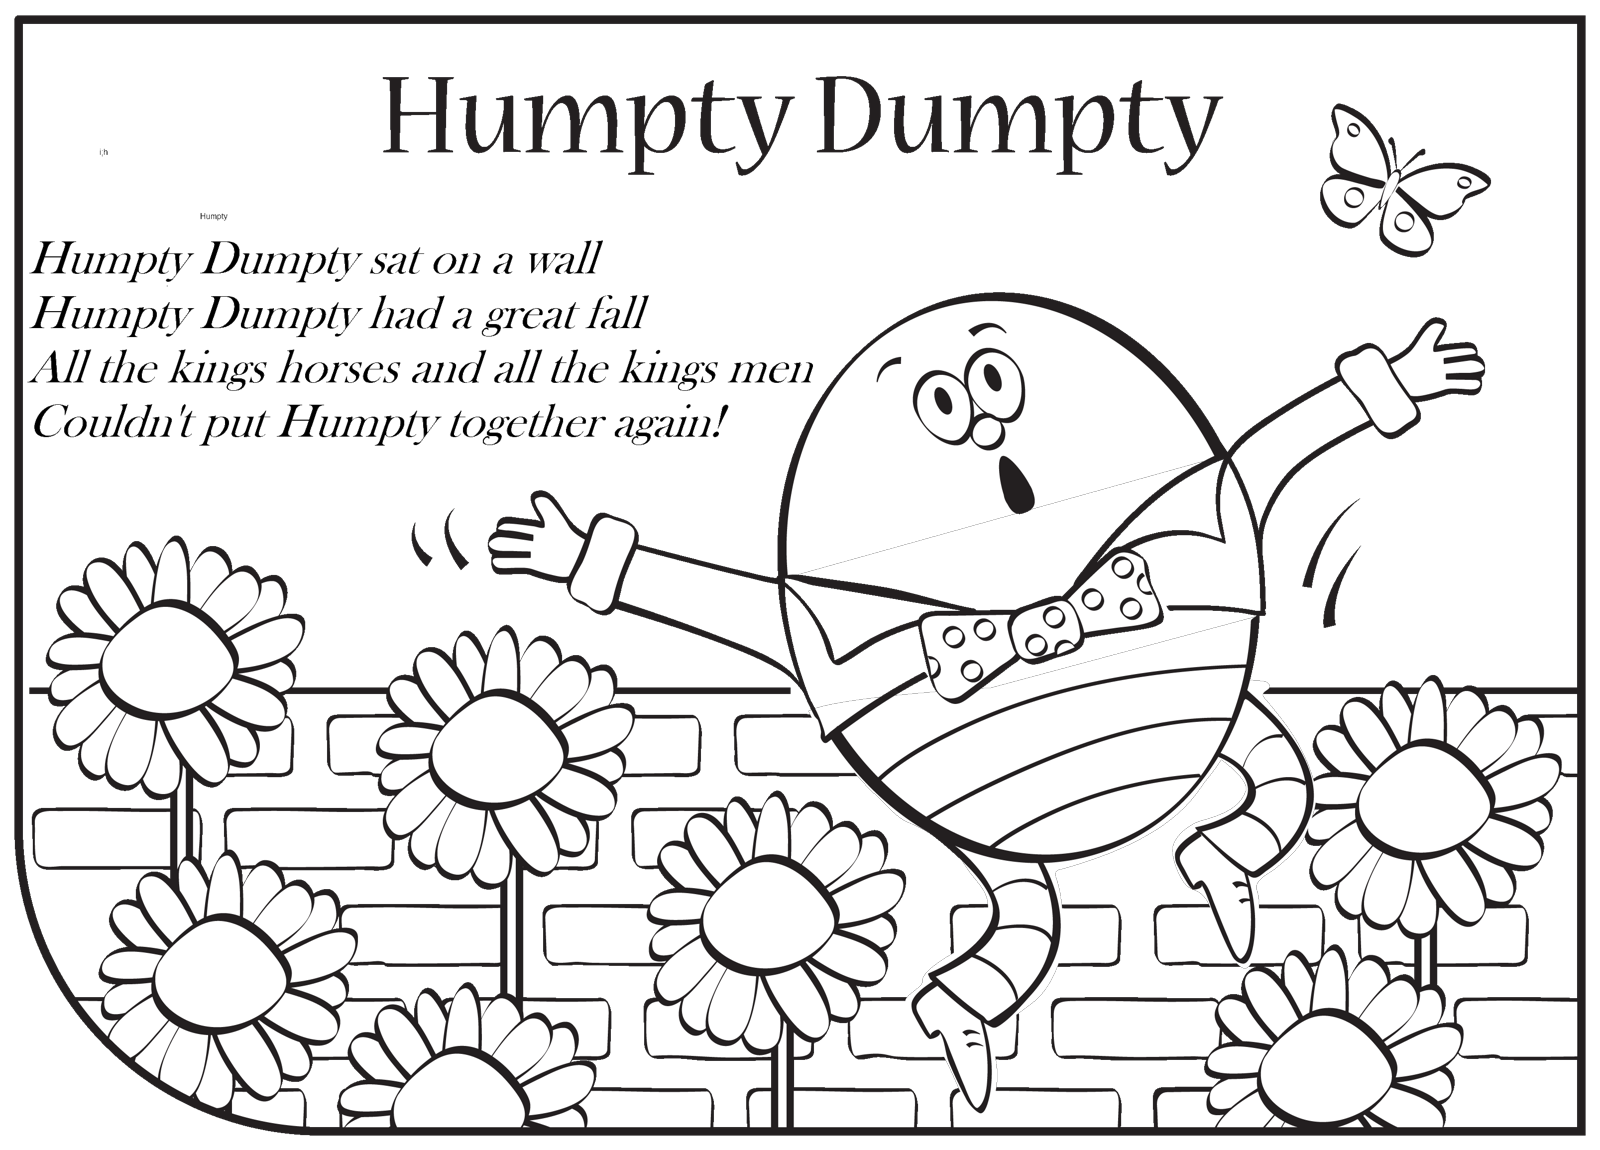 Free Humpty Dumpty Clipart Black And White, Download Free.